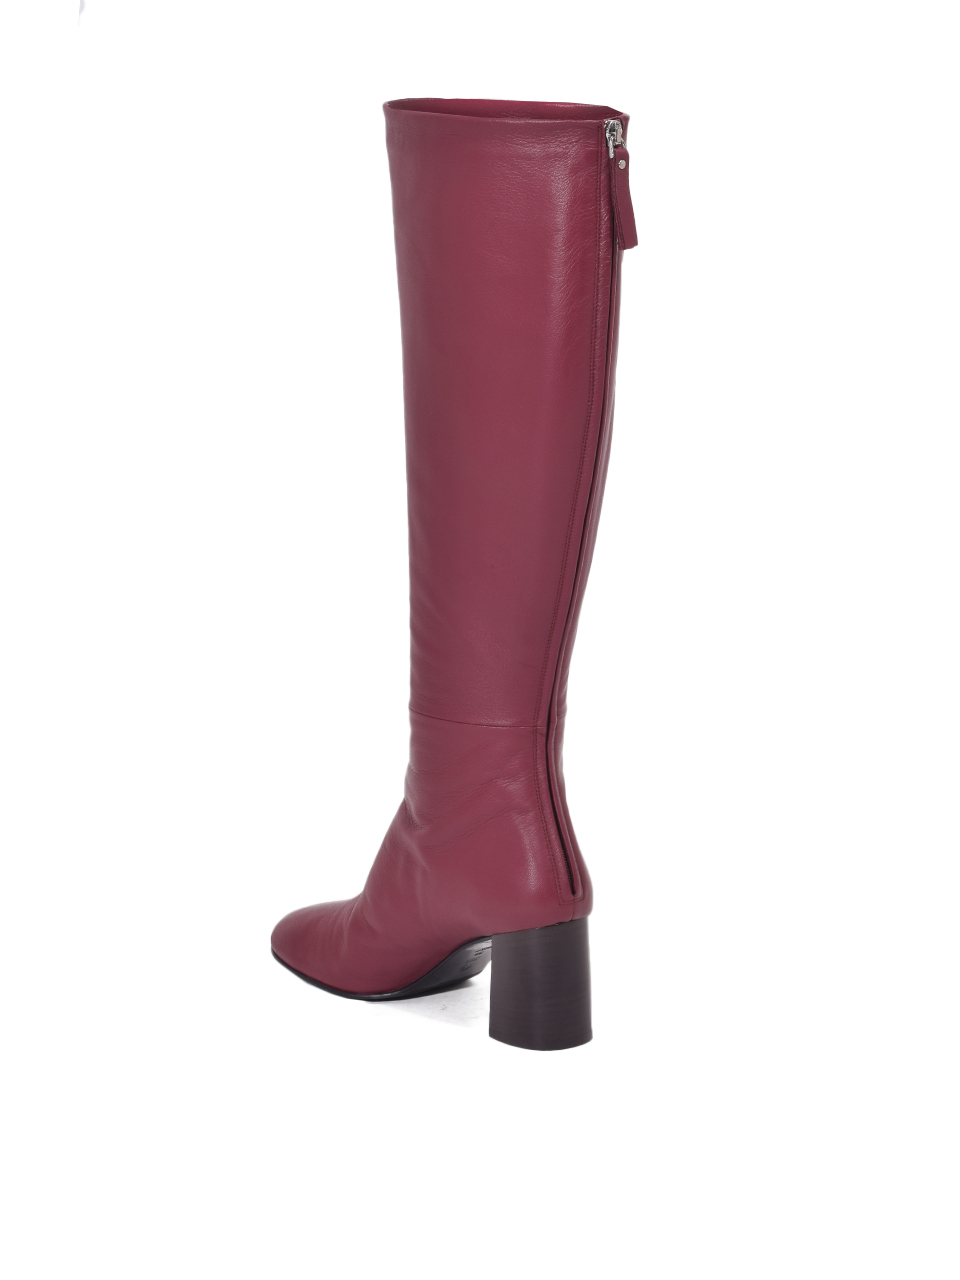 3.1 PHILLIP LIM Nadia Leather Knee Boots in Burgundy Back View